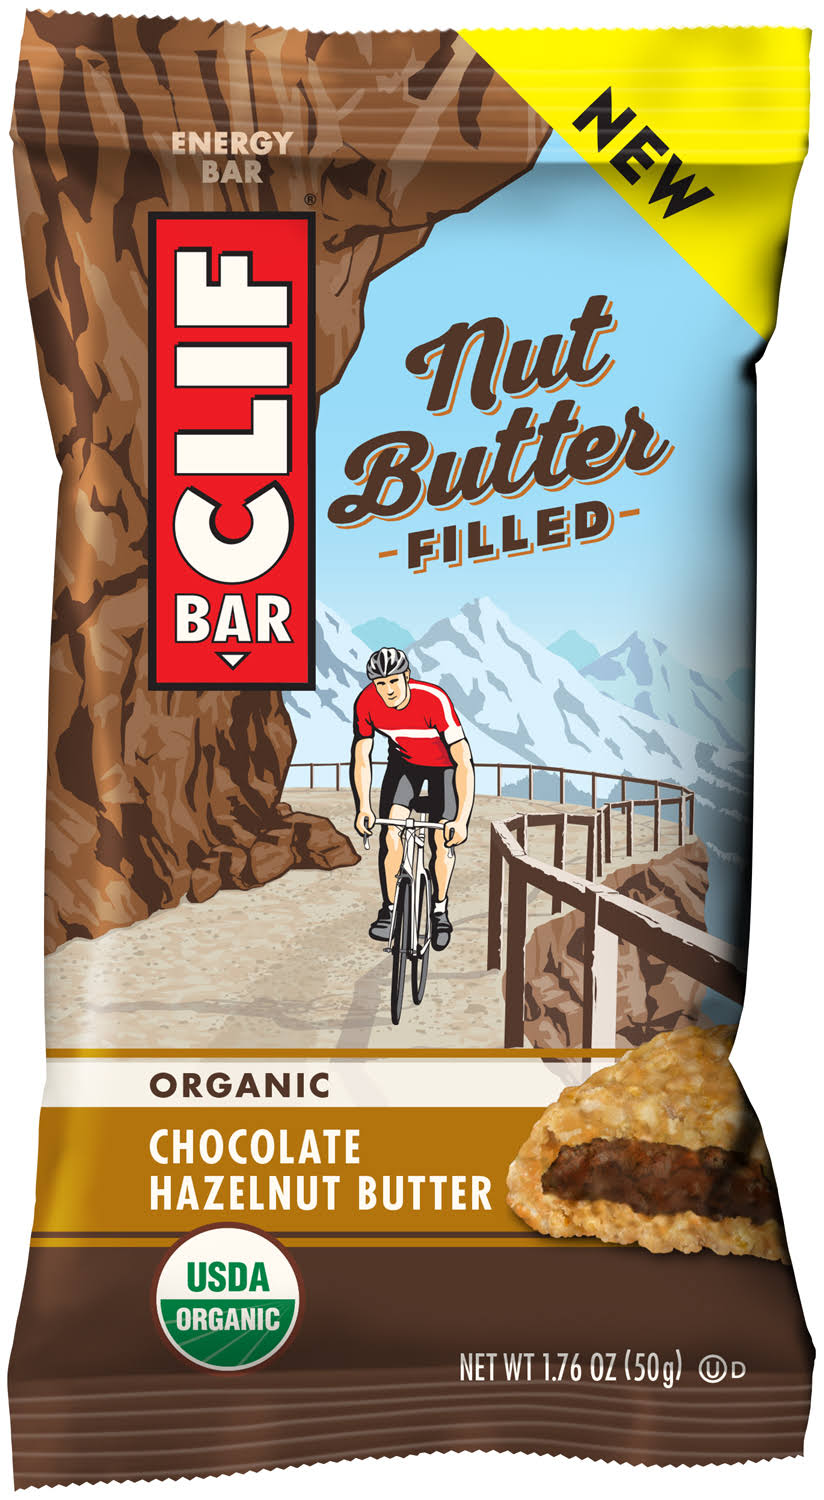 Clif Nut Butter Filled Energy Bar, Organic, Chocolate Hazelnut Butter - 1.76 oz